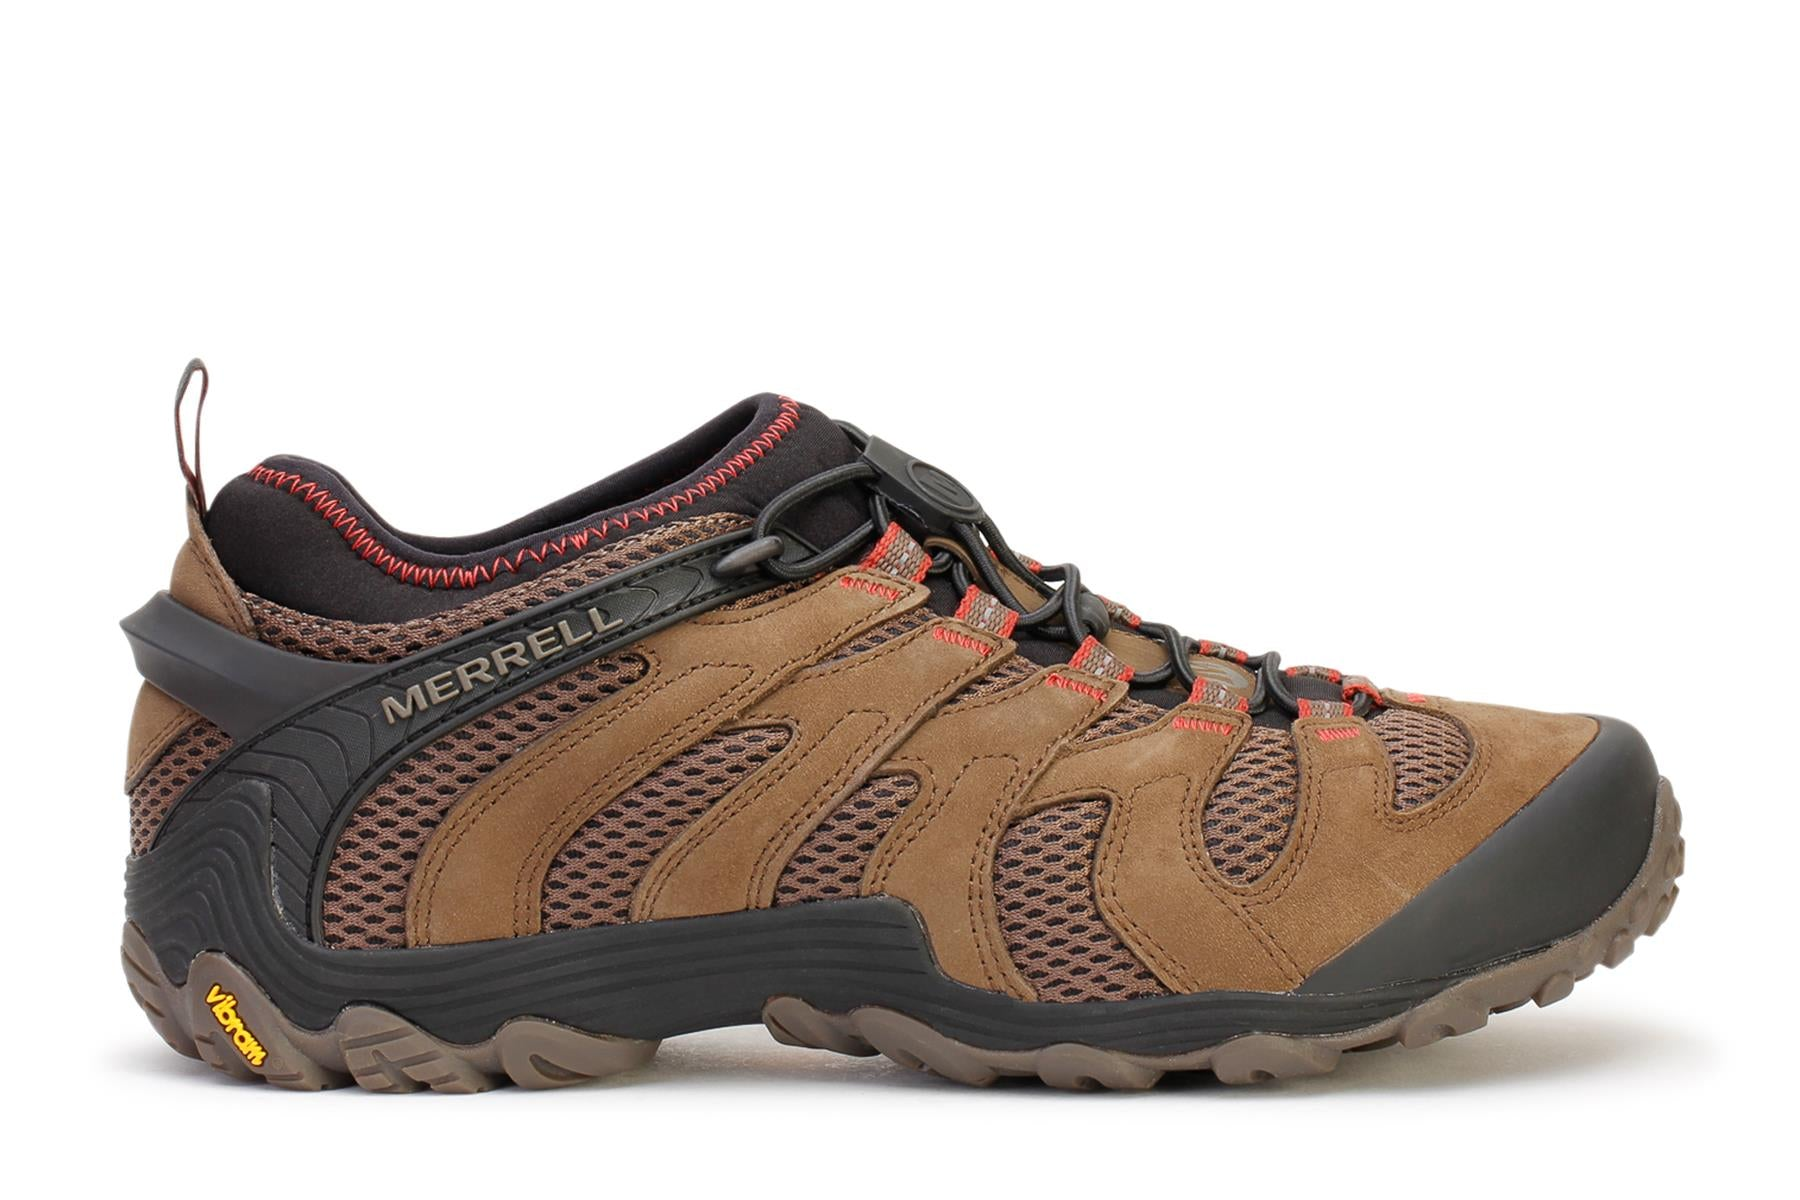 Chameleon 7 Stretch Merrell Outdoor